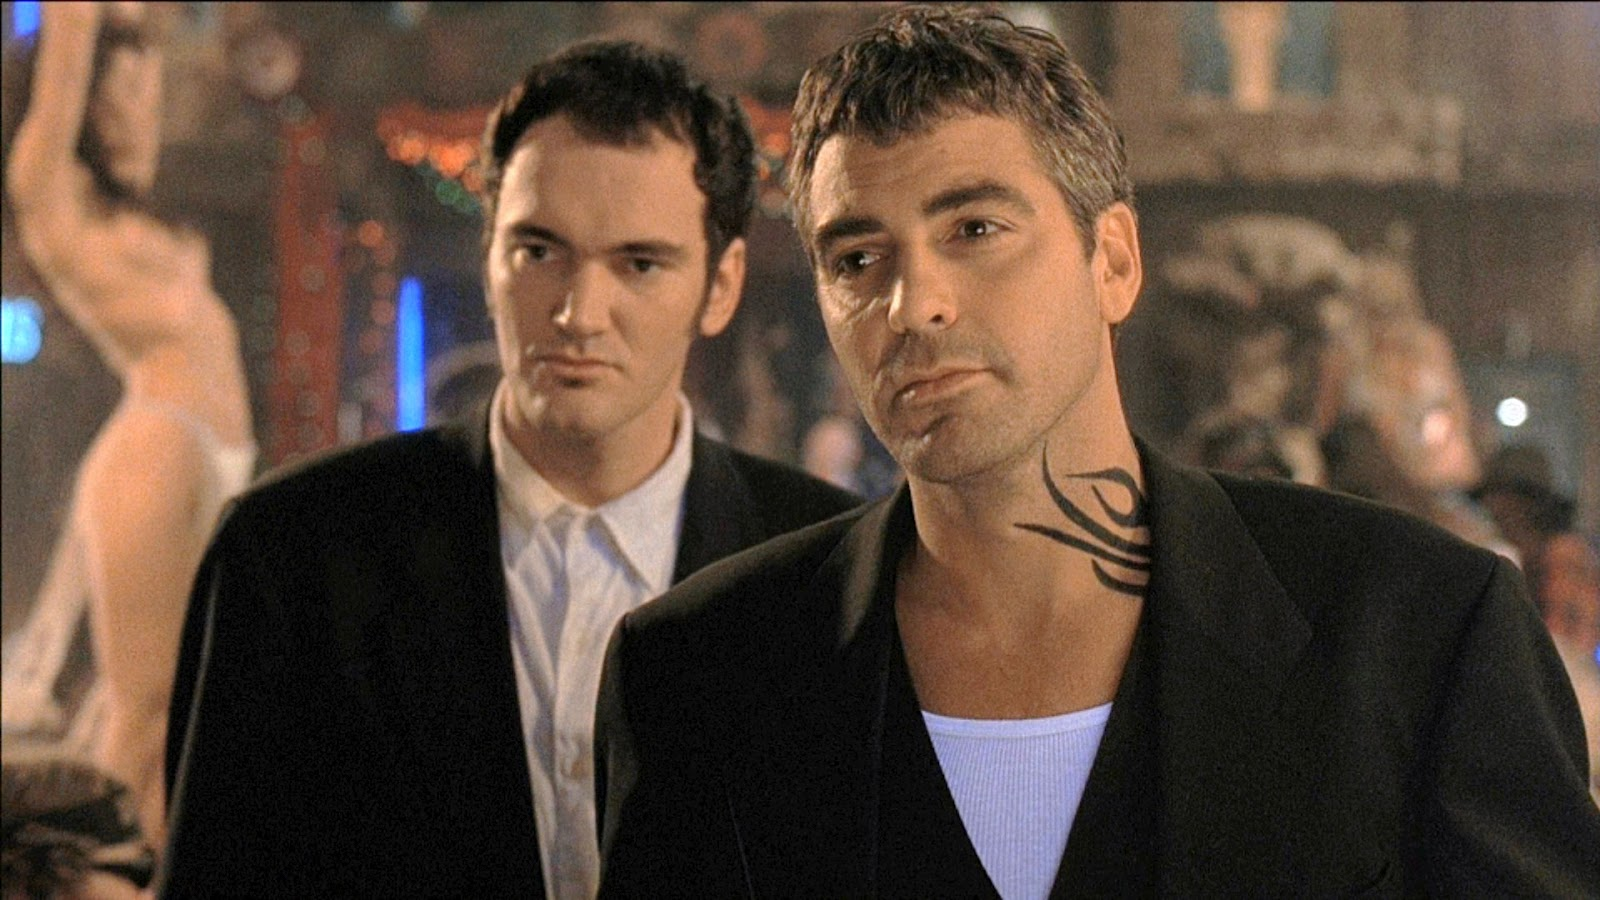 50 Best Action Movies On Netflix From Dusk Till Dawn